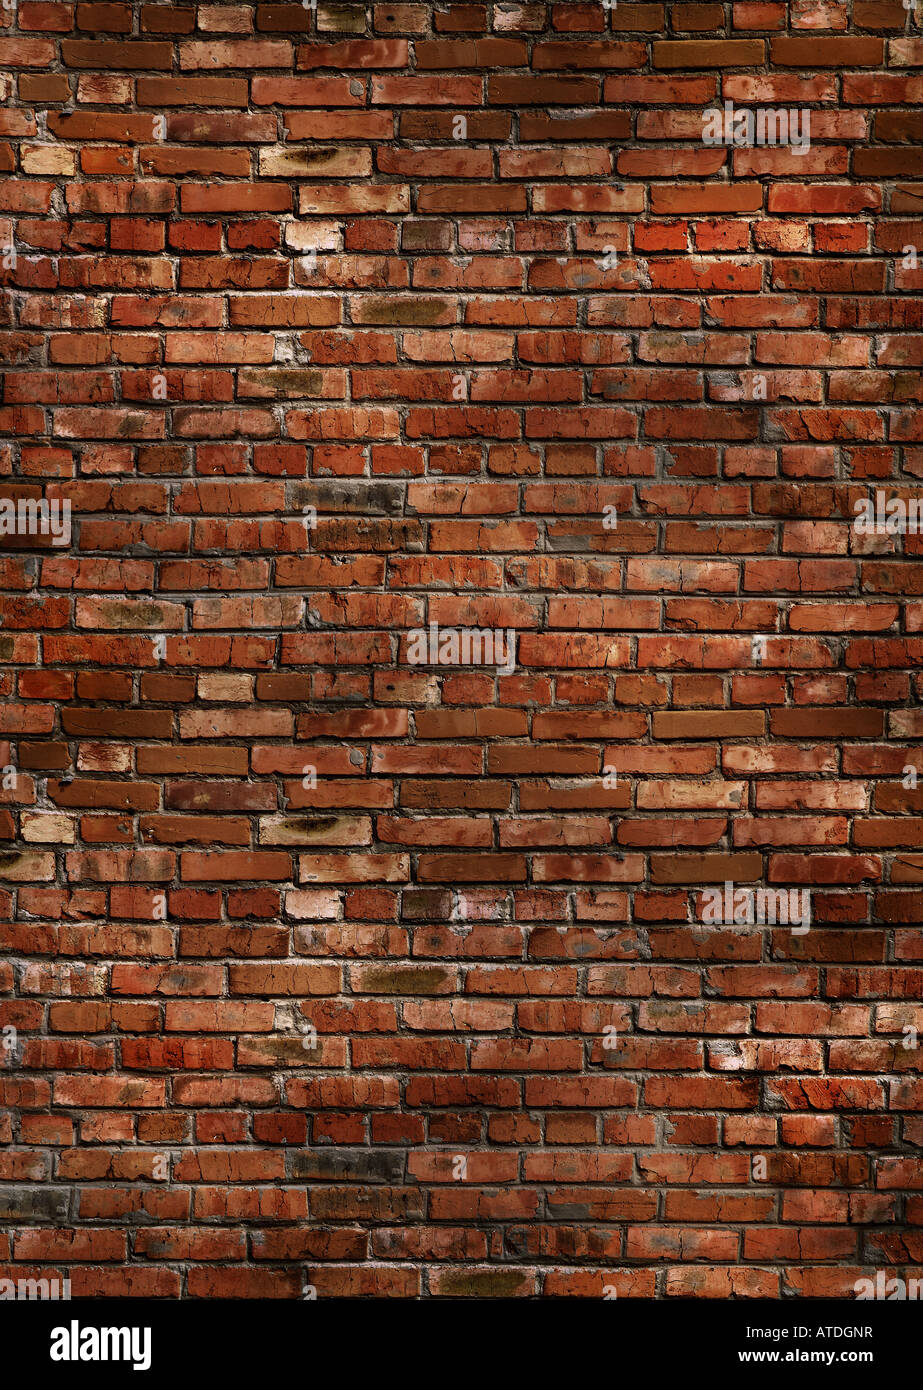 Dark Red Brick Wall Texture